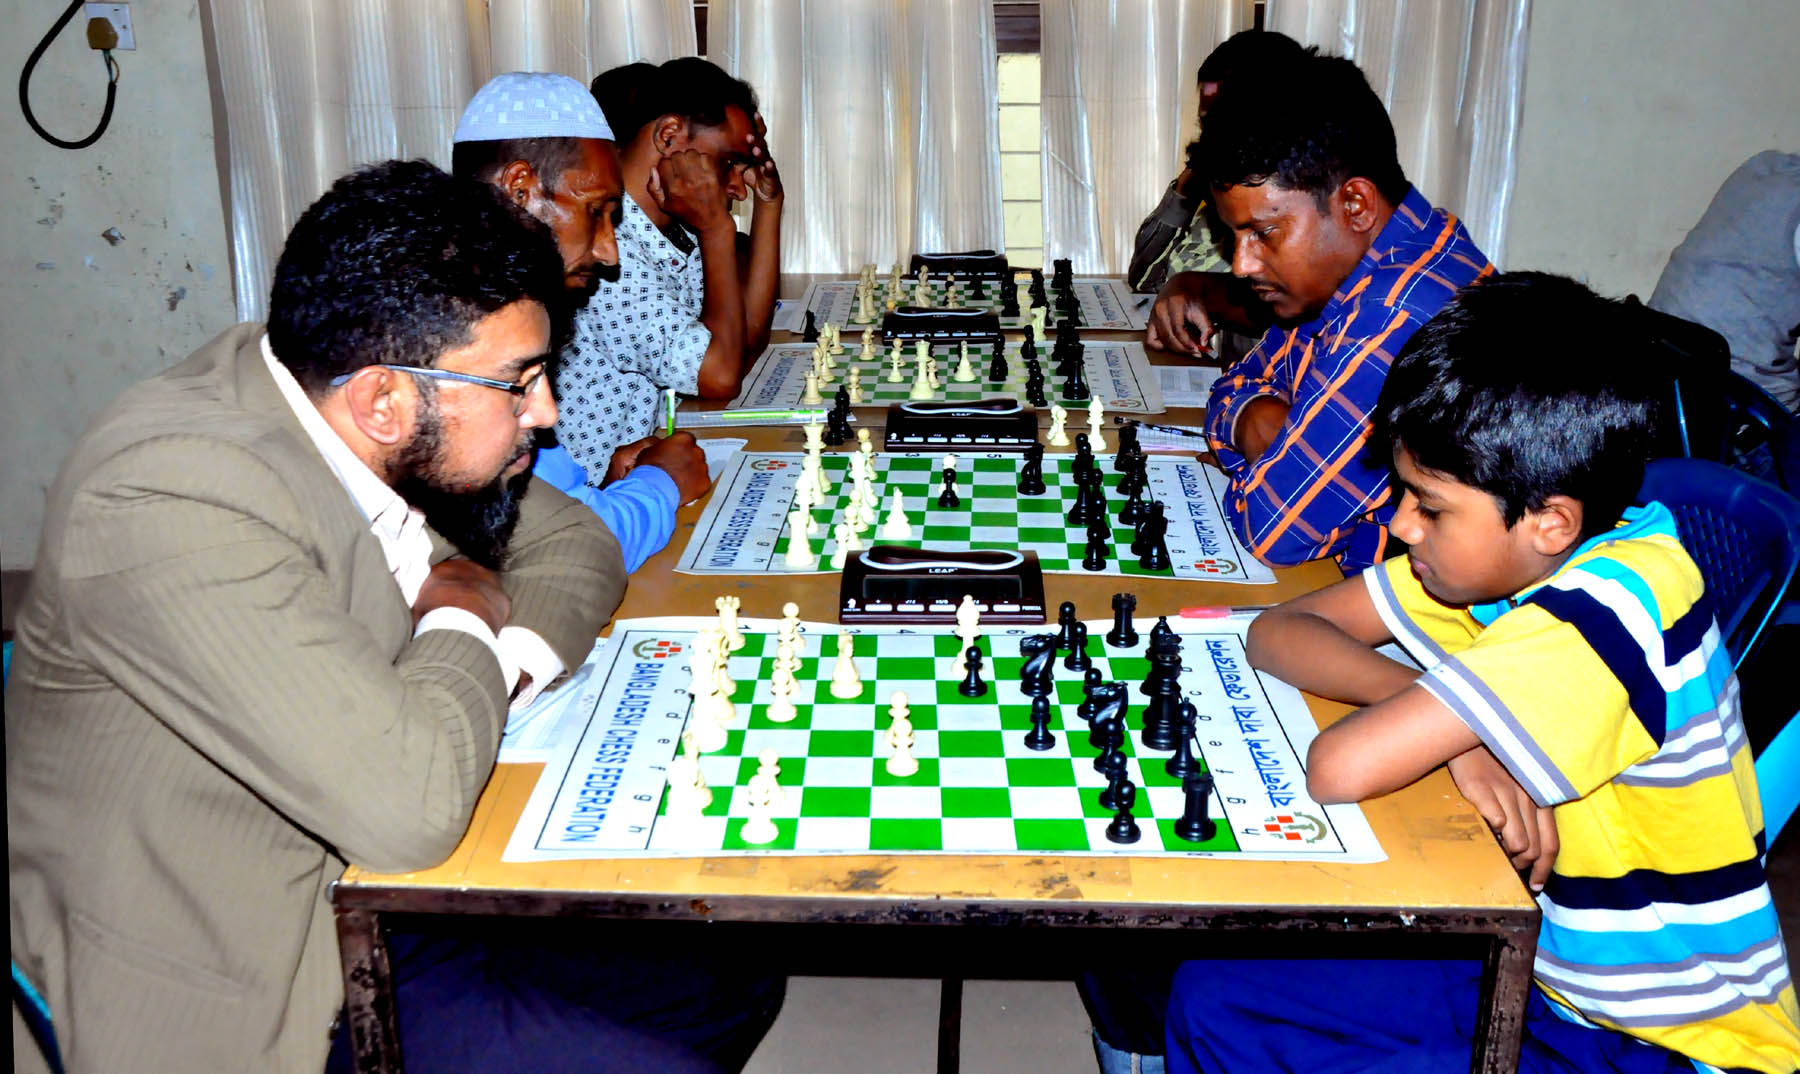 A scene from the 6th round games of Esoft Arena FIDE Rating Chess Tournament below 2000 rating at Bangladesh Chess Federation hall-room at 2nd floor of National Sports Council old building on Monday.